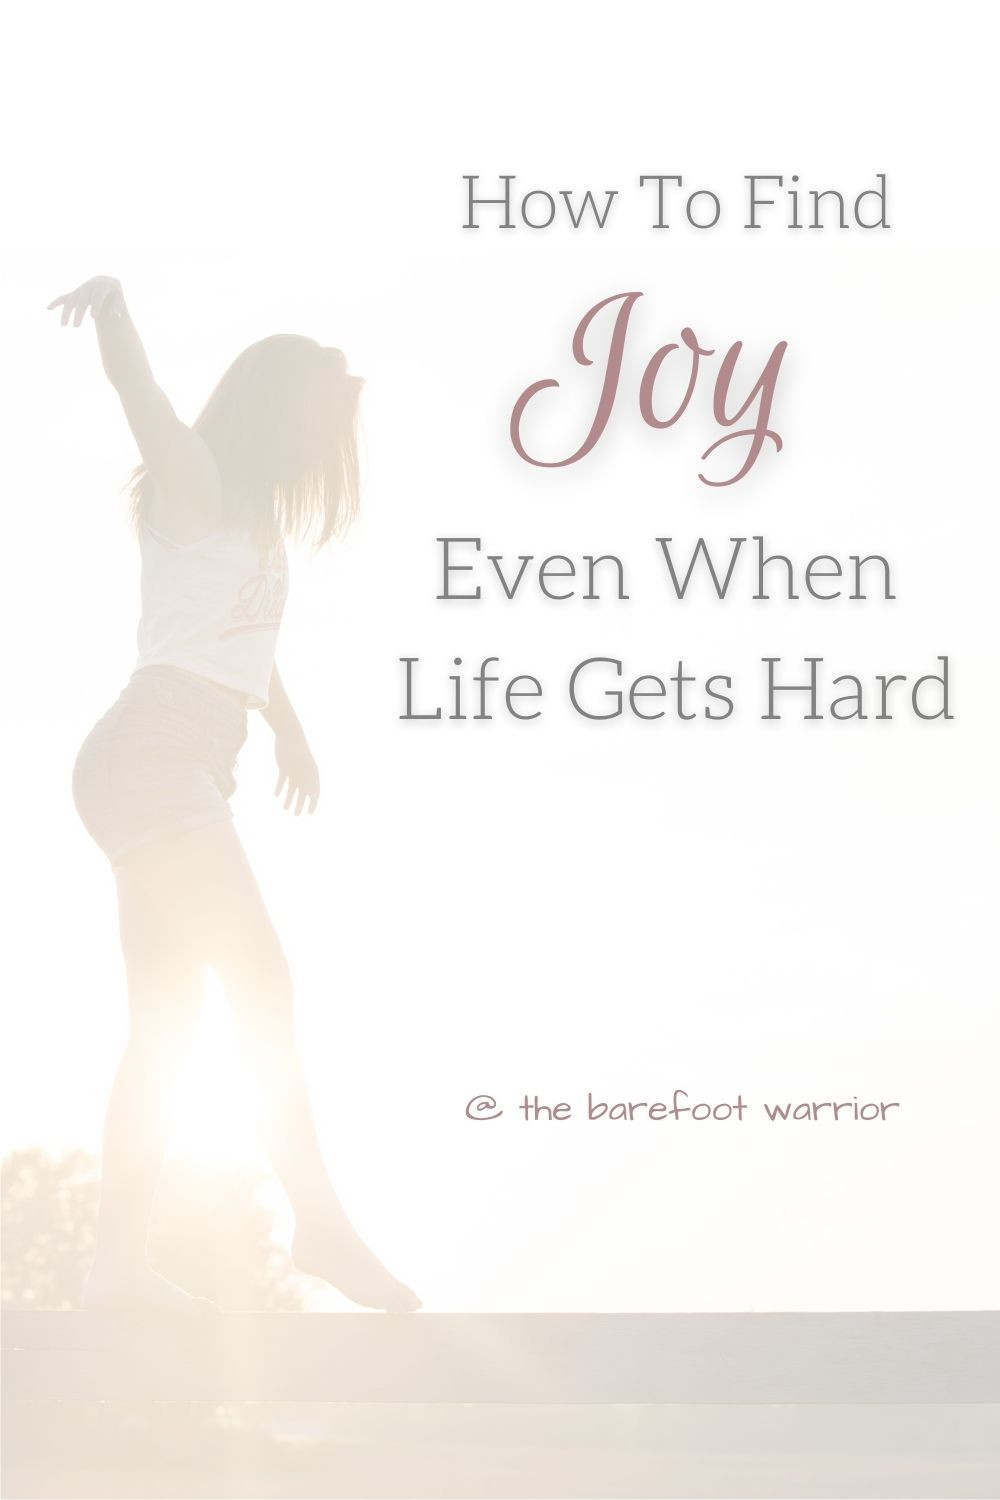 How to find joy - even when life gets hard